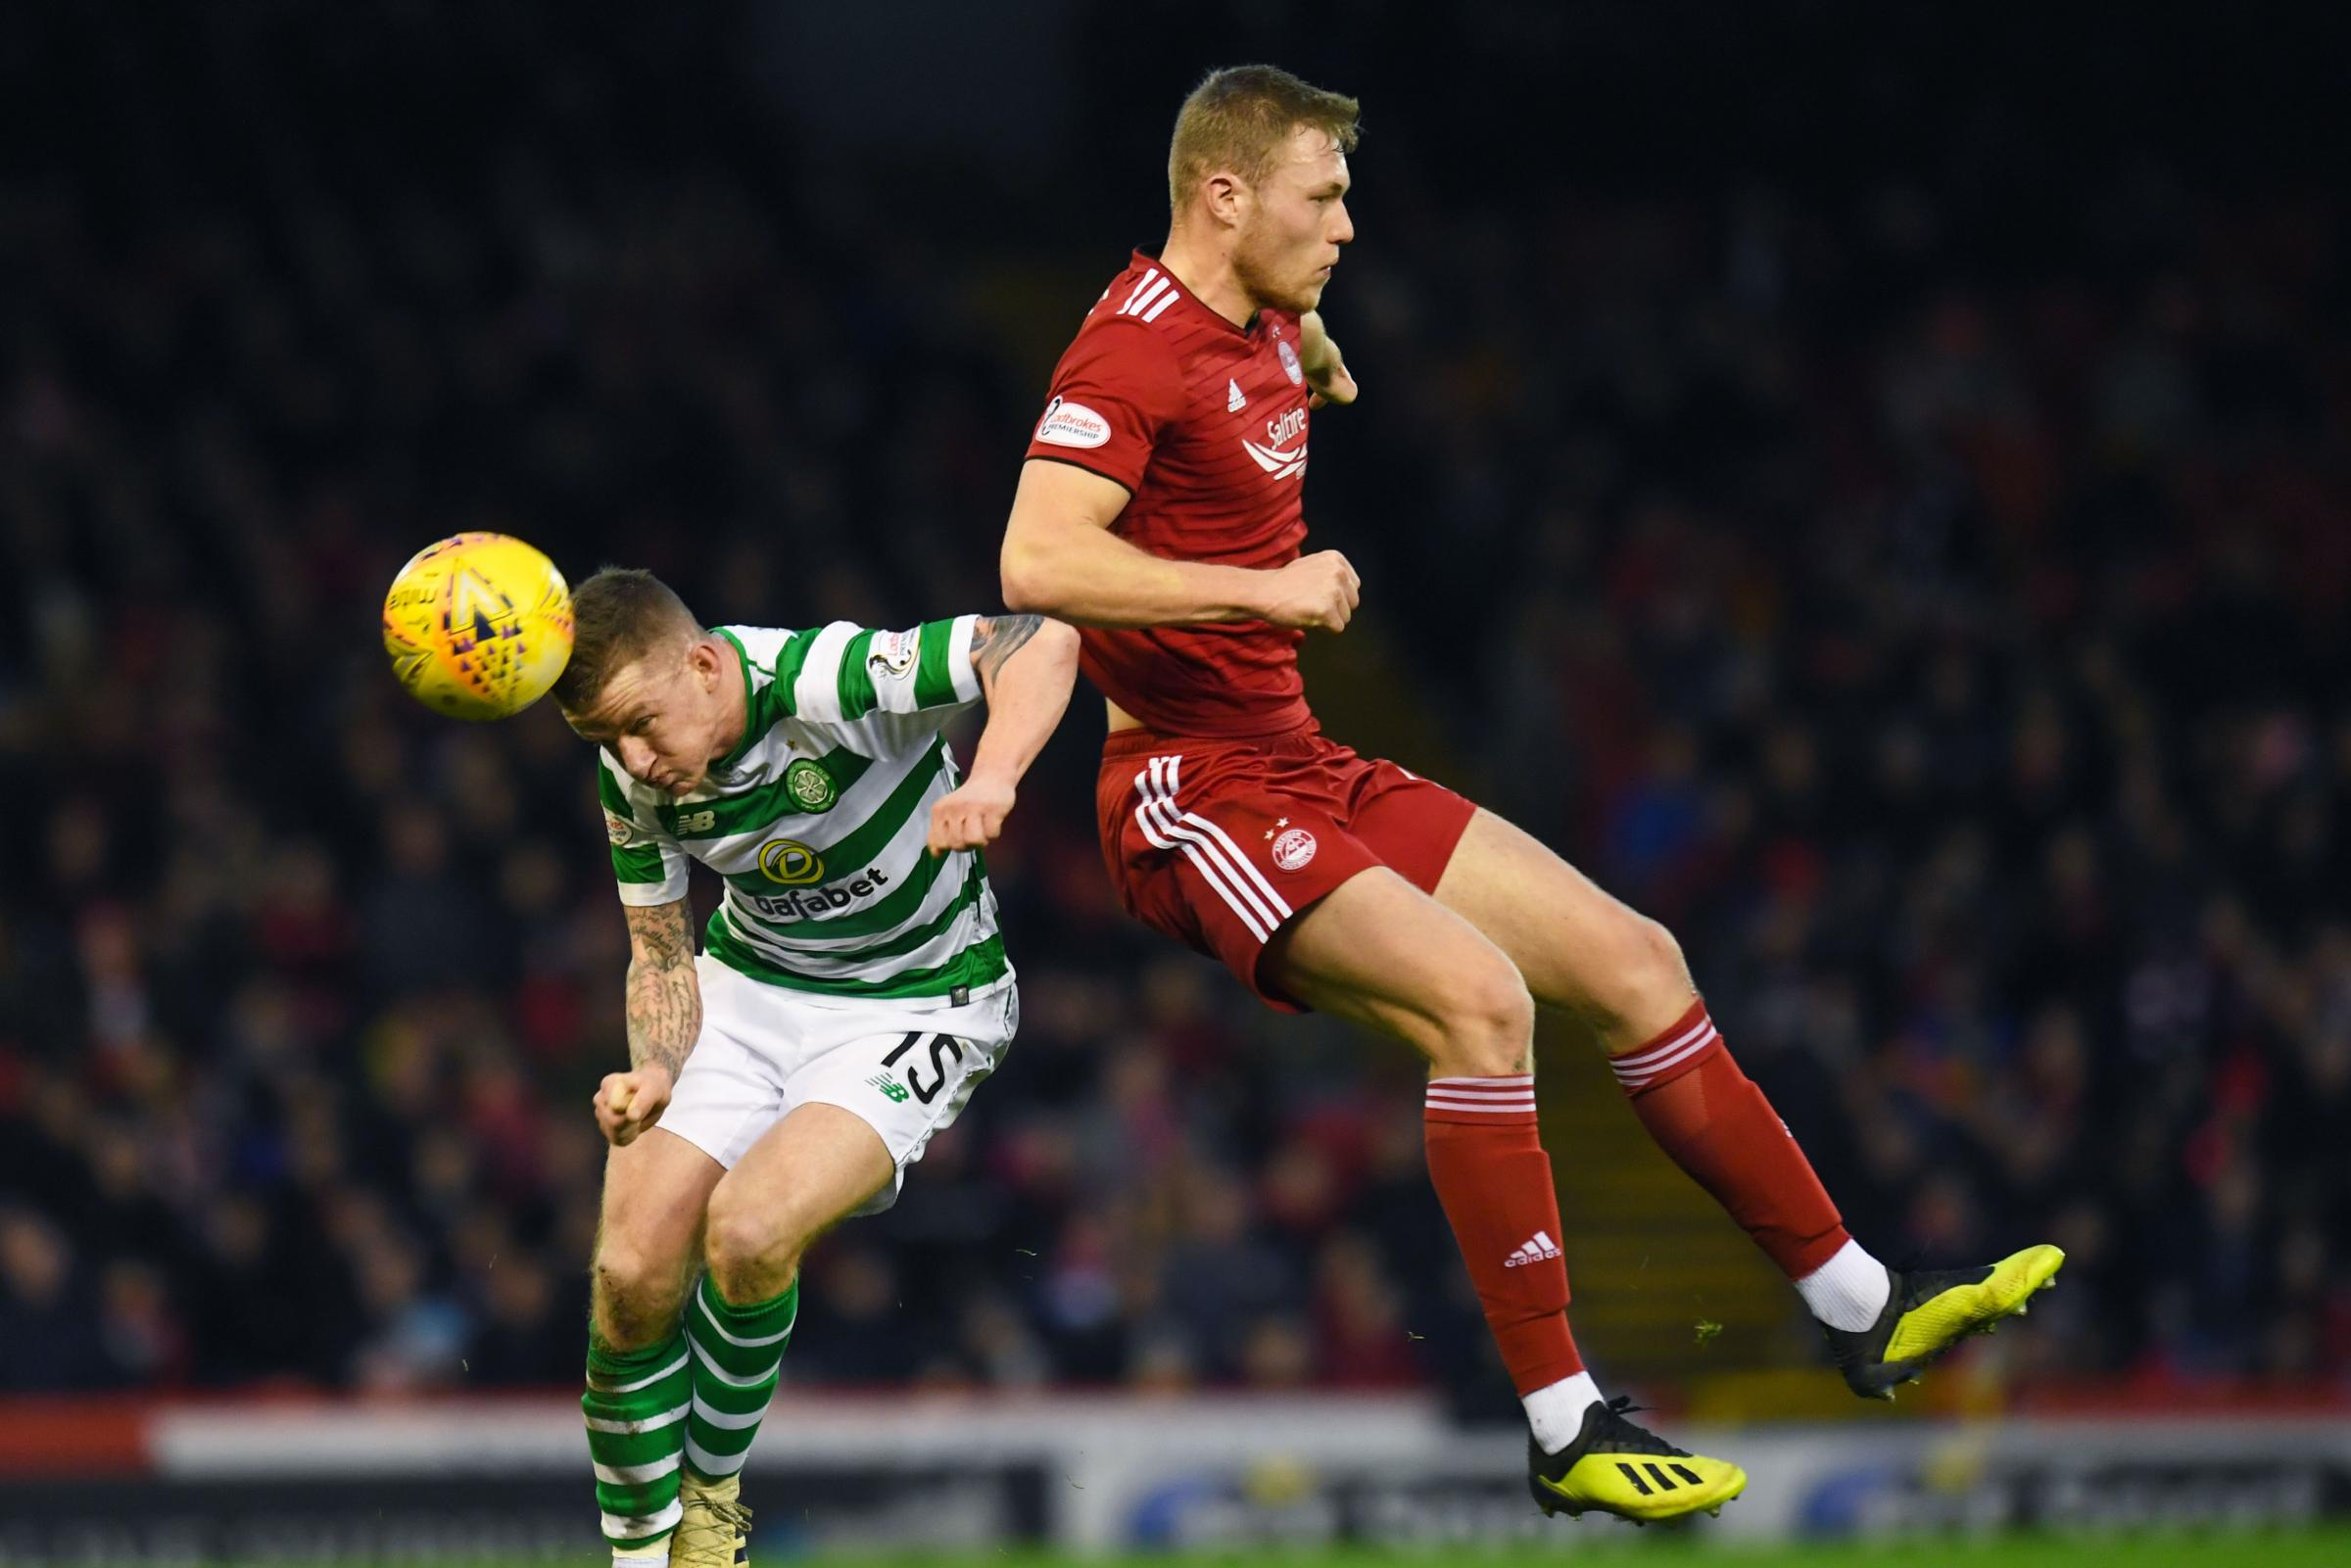 Sam Cosgove on Aberdeen, Duncan Ferguson, tough life lessons in non-league football and, erm accounting